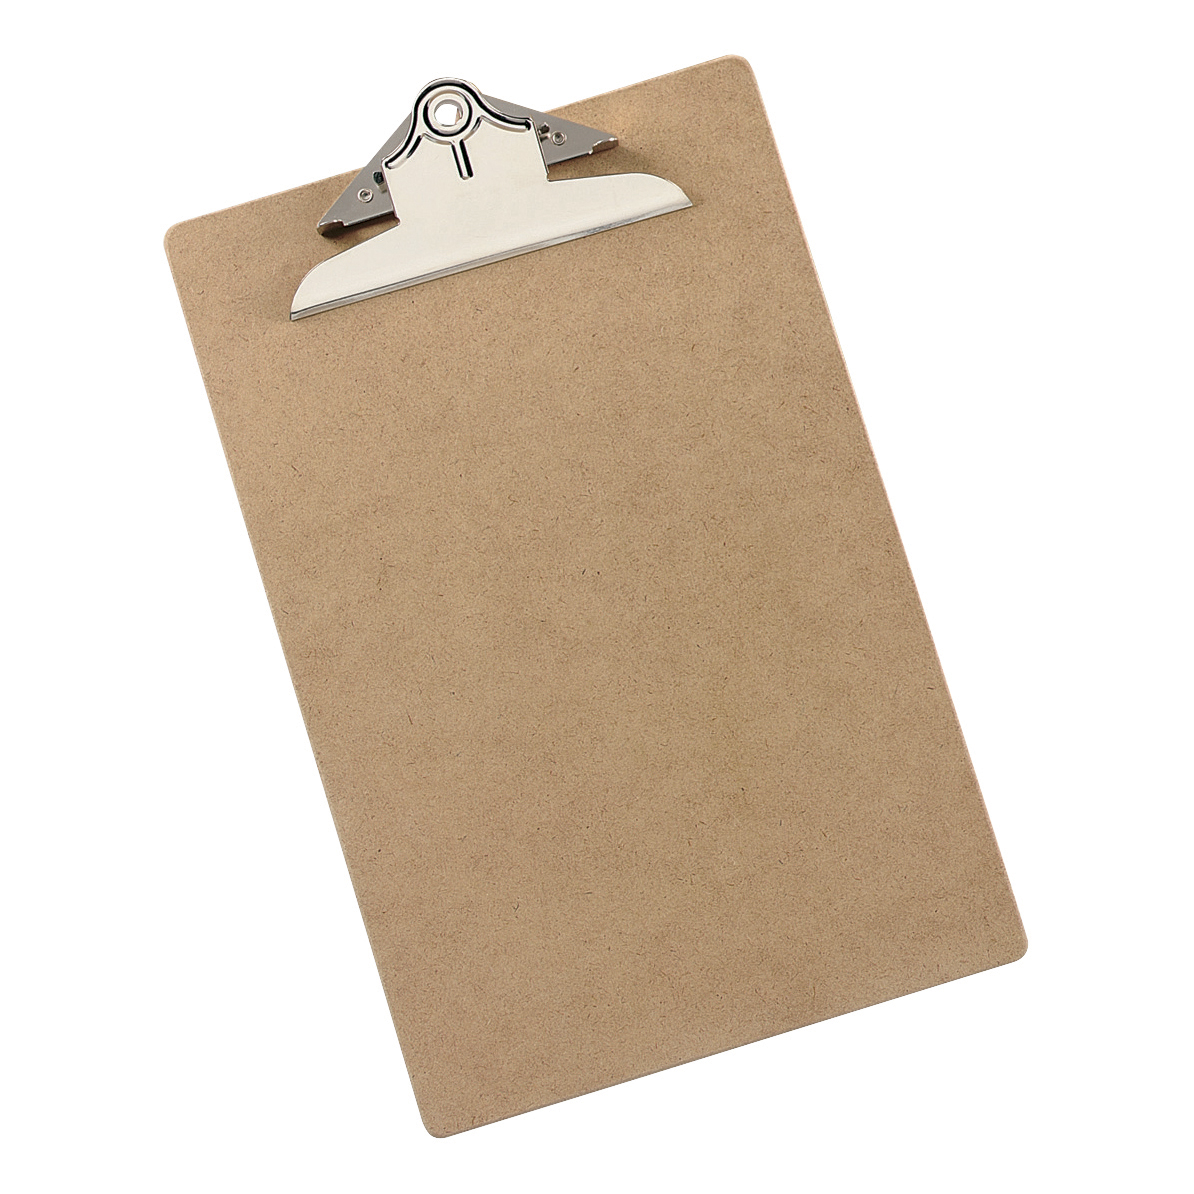 Image for 5 Star Office Clipboard Rigid Hardboard Foolscap